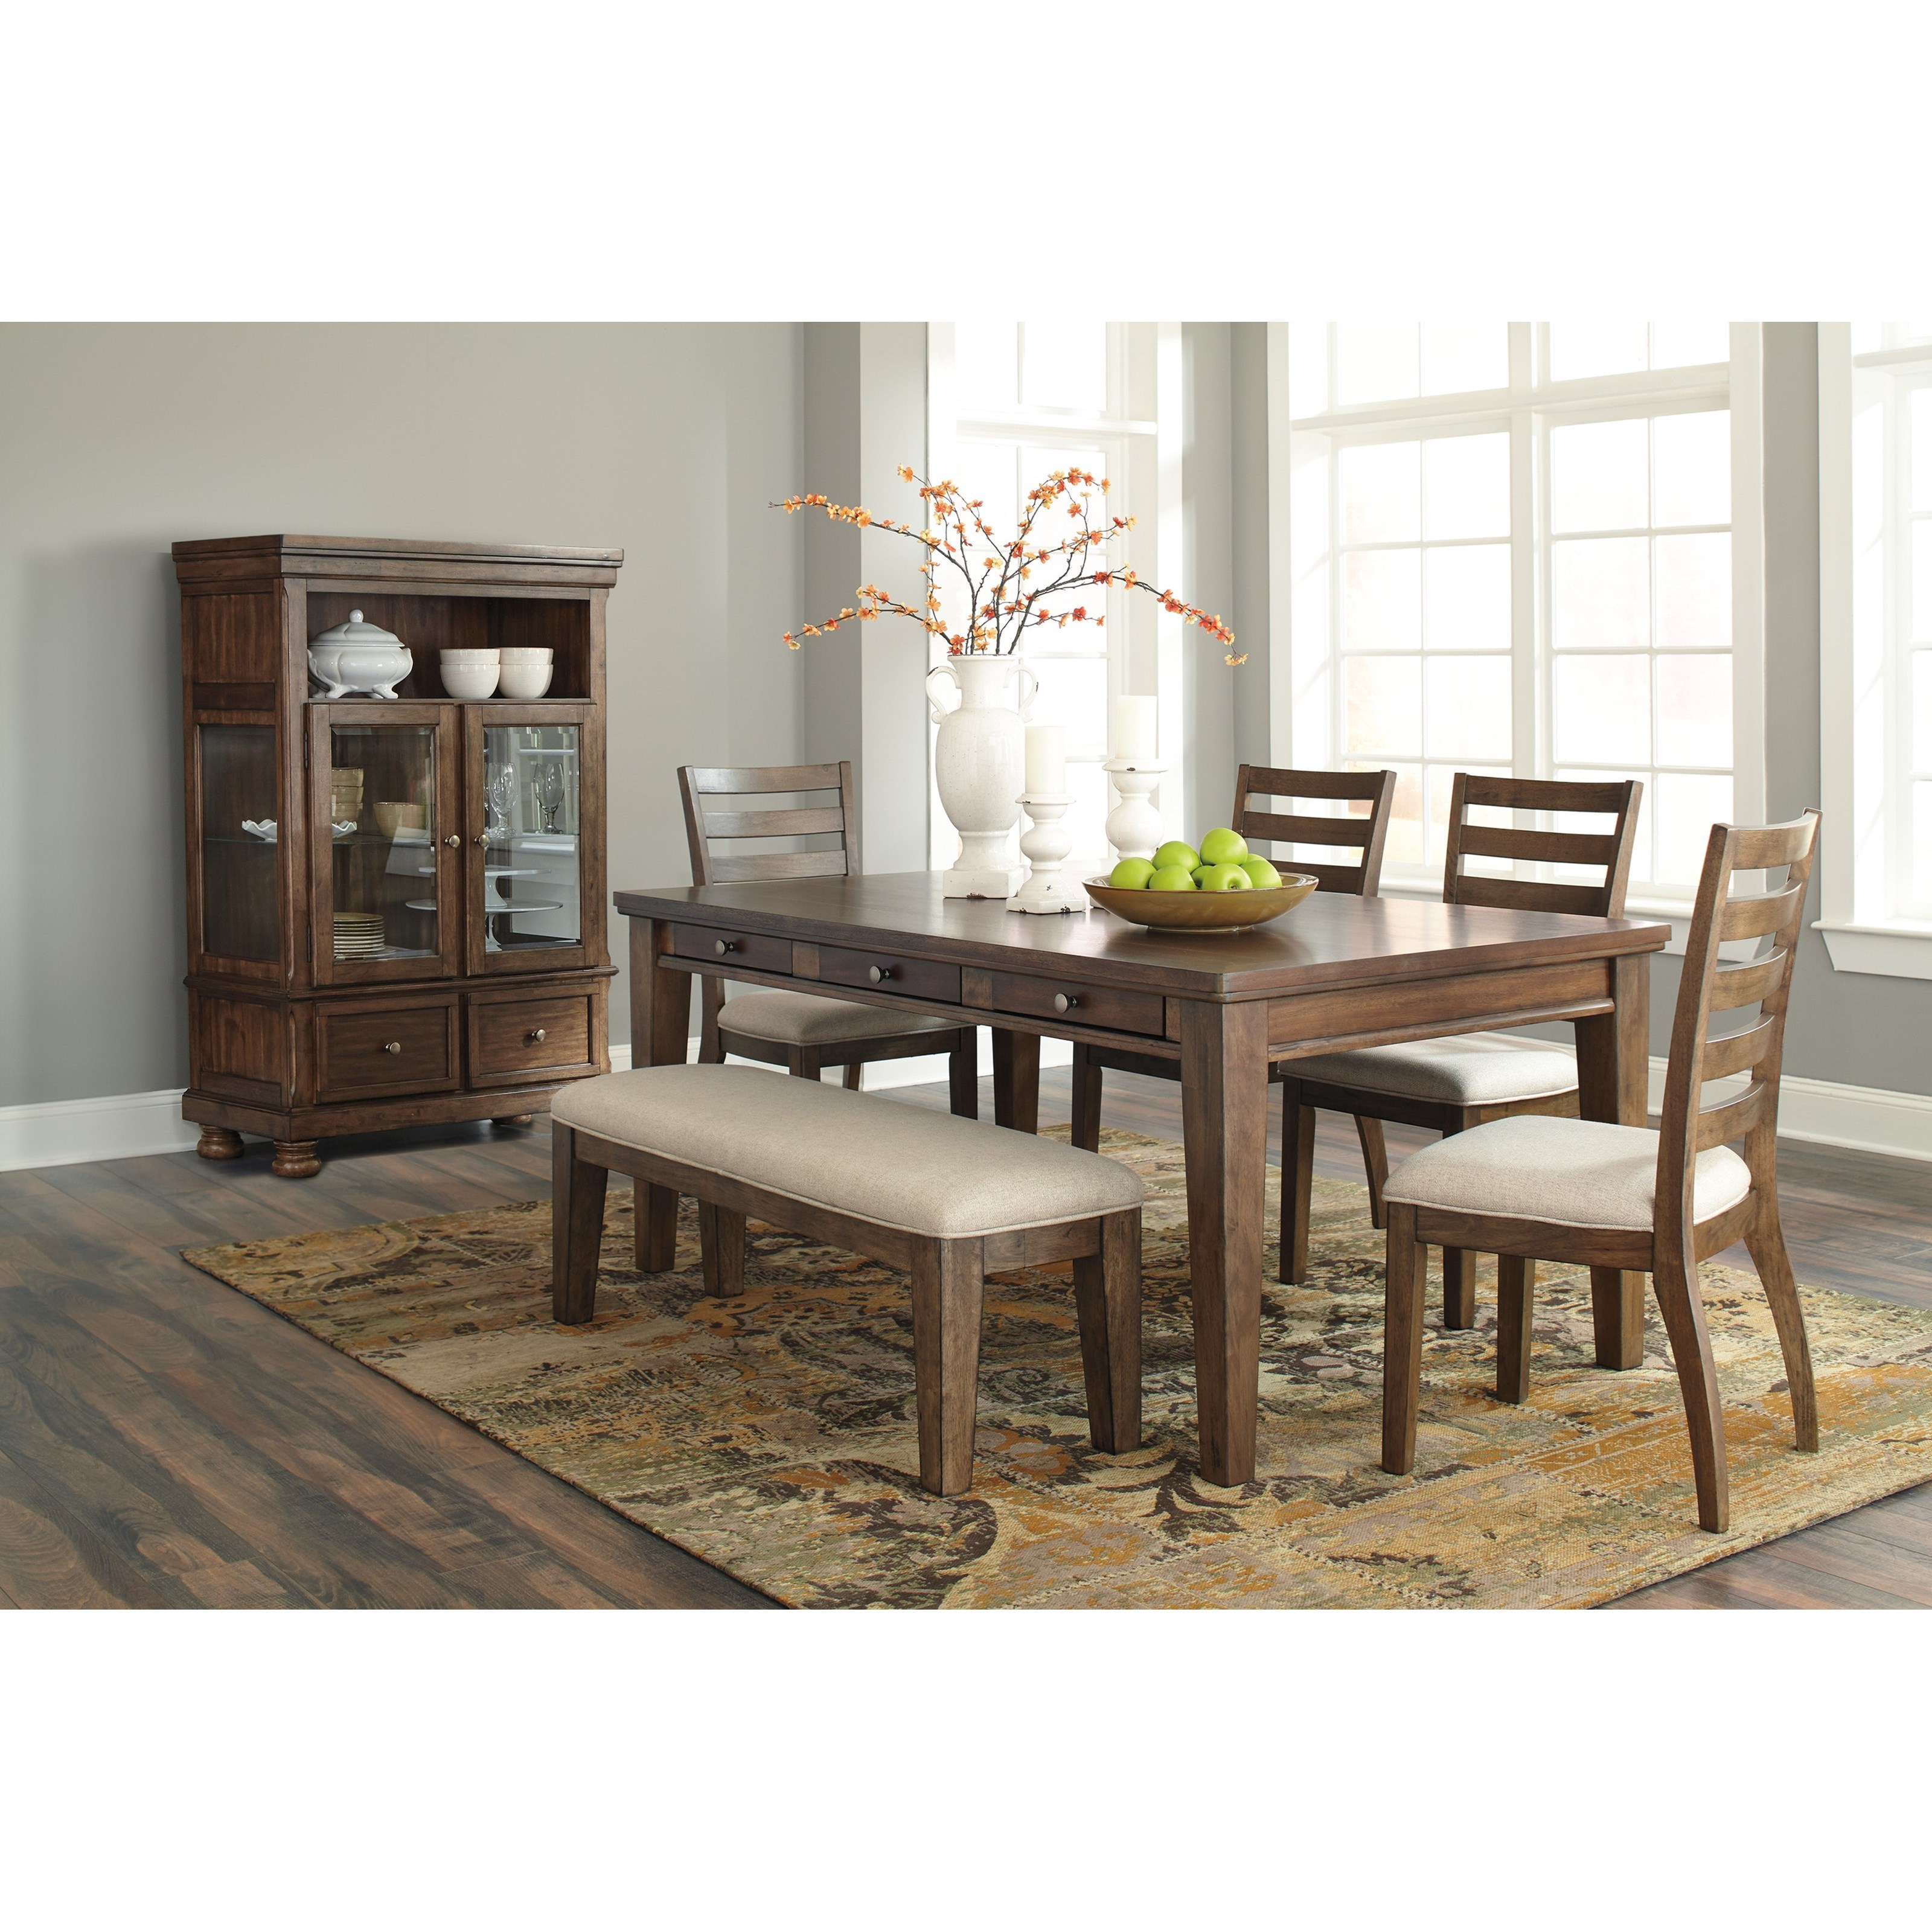 Signature Design By Ashley Flynnter Casual Dining Room